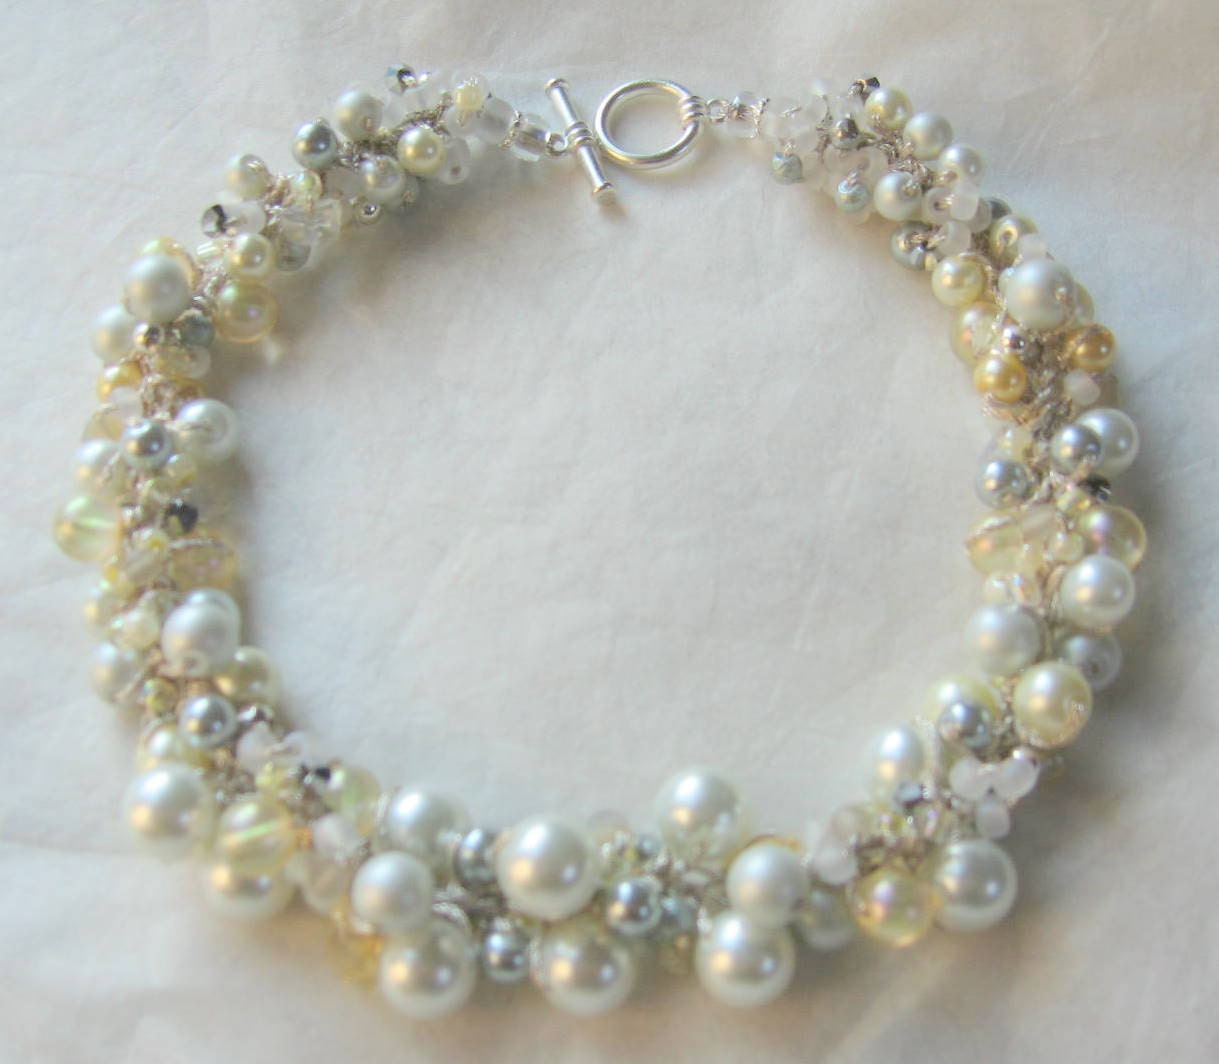 Striking Bridal Bridesmaid Wedding Jewelry - Pearl Crystal Statement  Necklace - Pale YELLOW SILK - Ivory,White, Silver Gray, Smokey Quartz